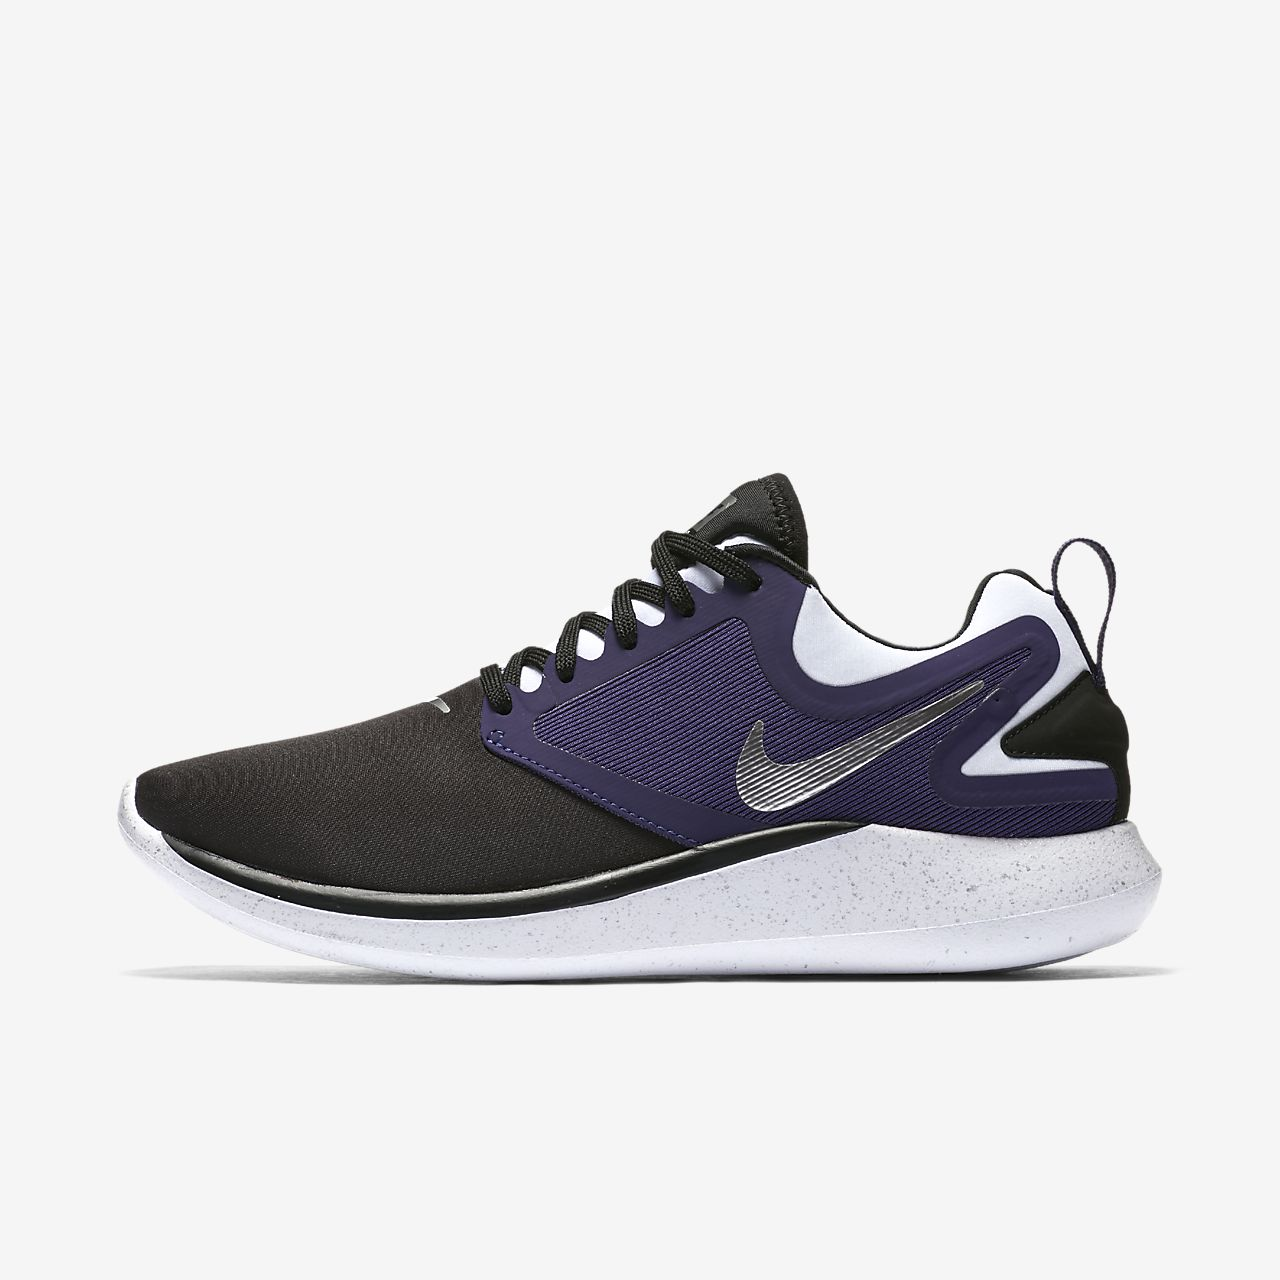 nike free shoe replacement supplies